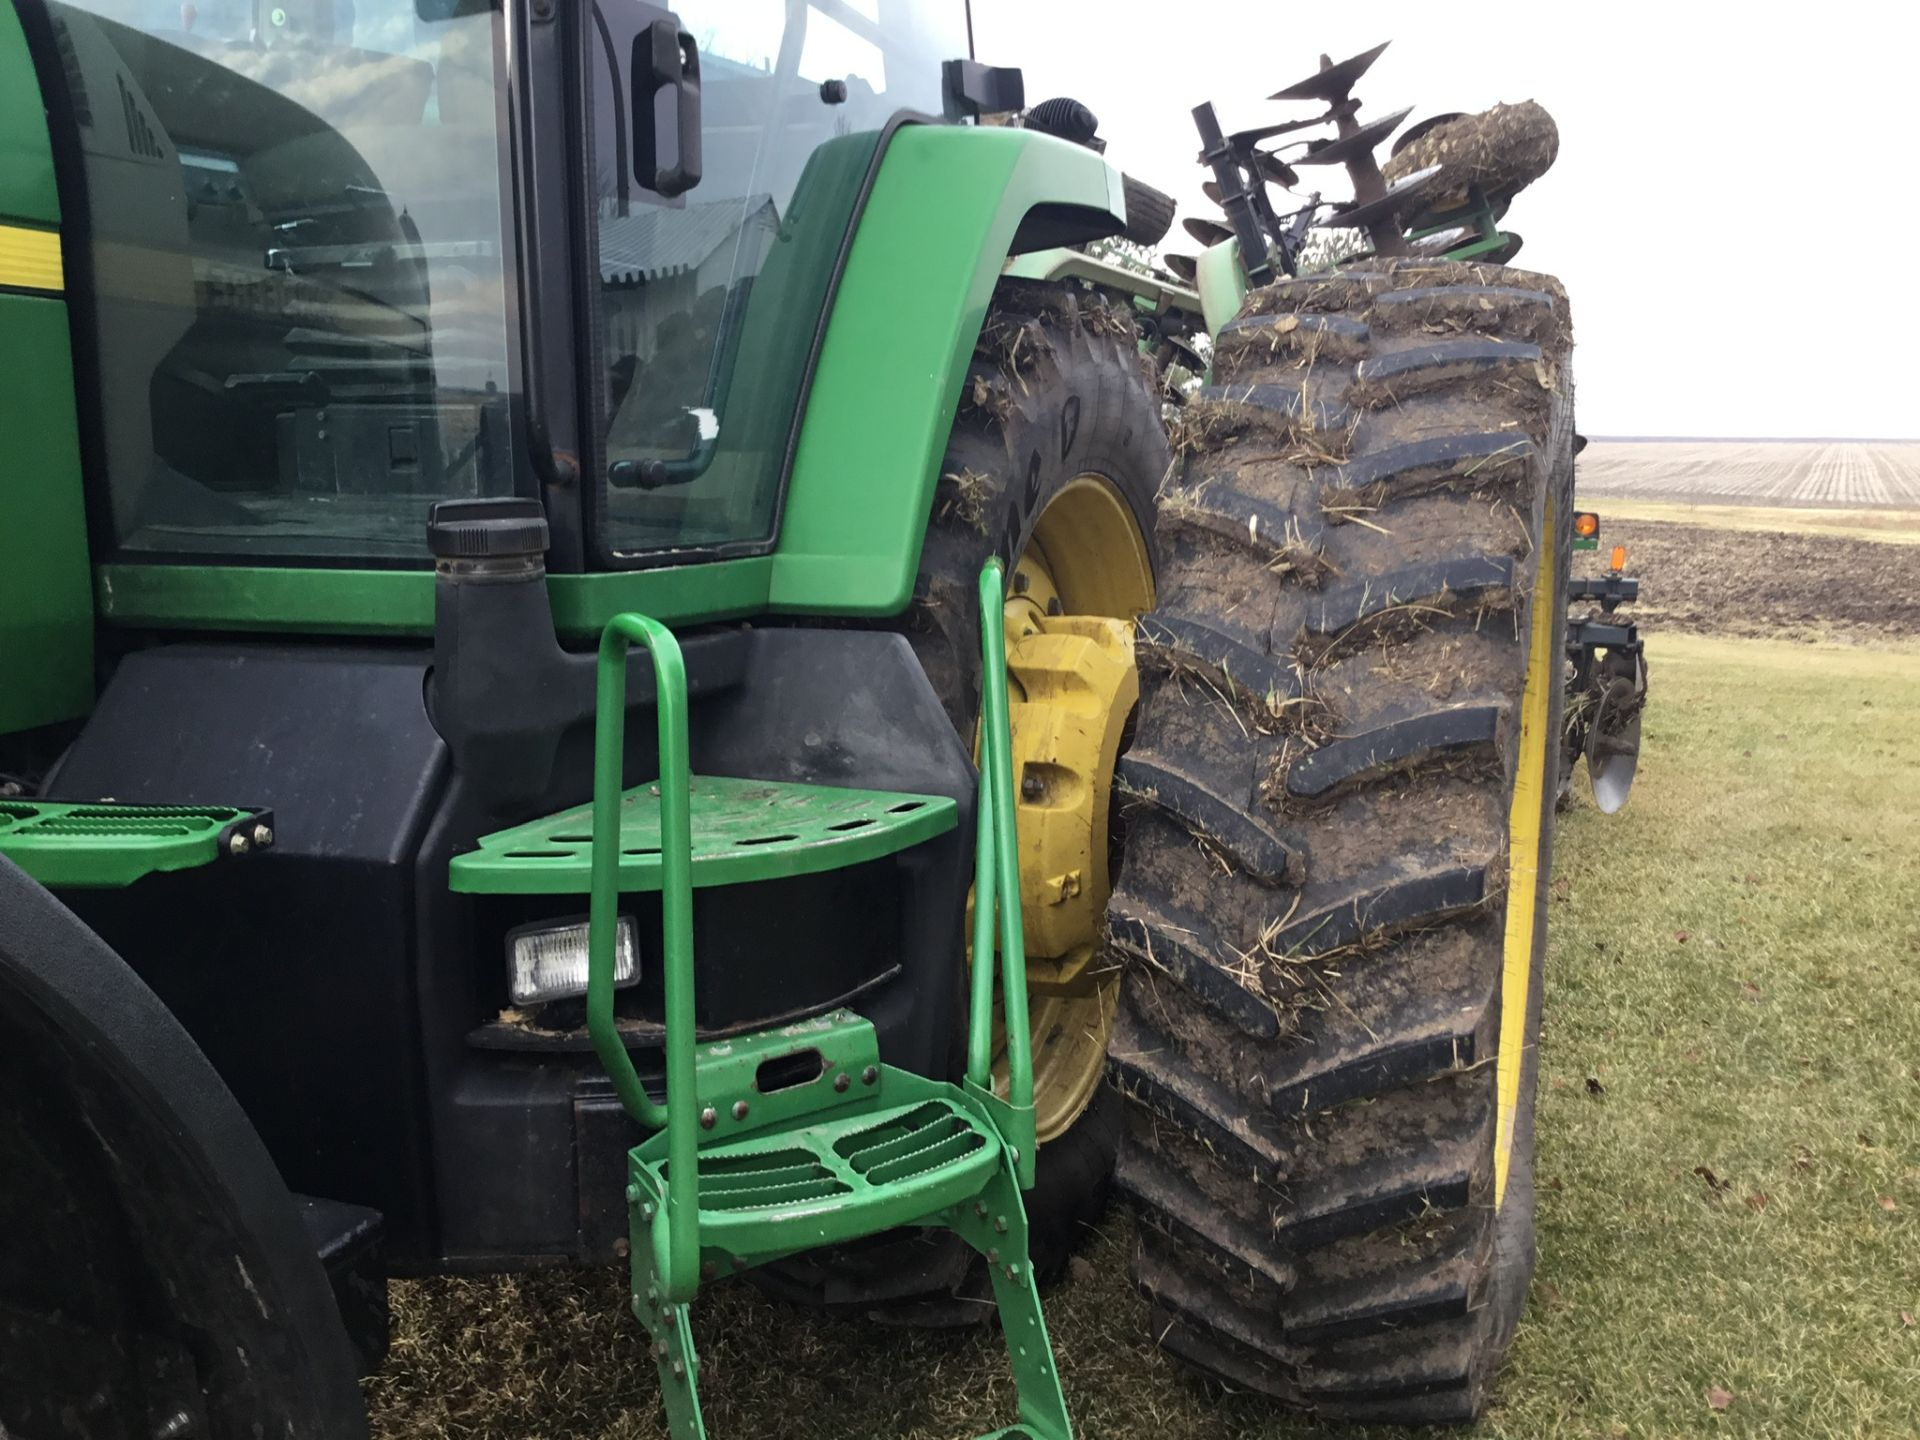 1997 John Deere 8300 MFWD, Power Shift, 3 Hydraulic Remotes, 3 Pt., Quick Hitch, PTO, Green Star - Image 9 of 25